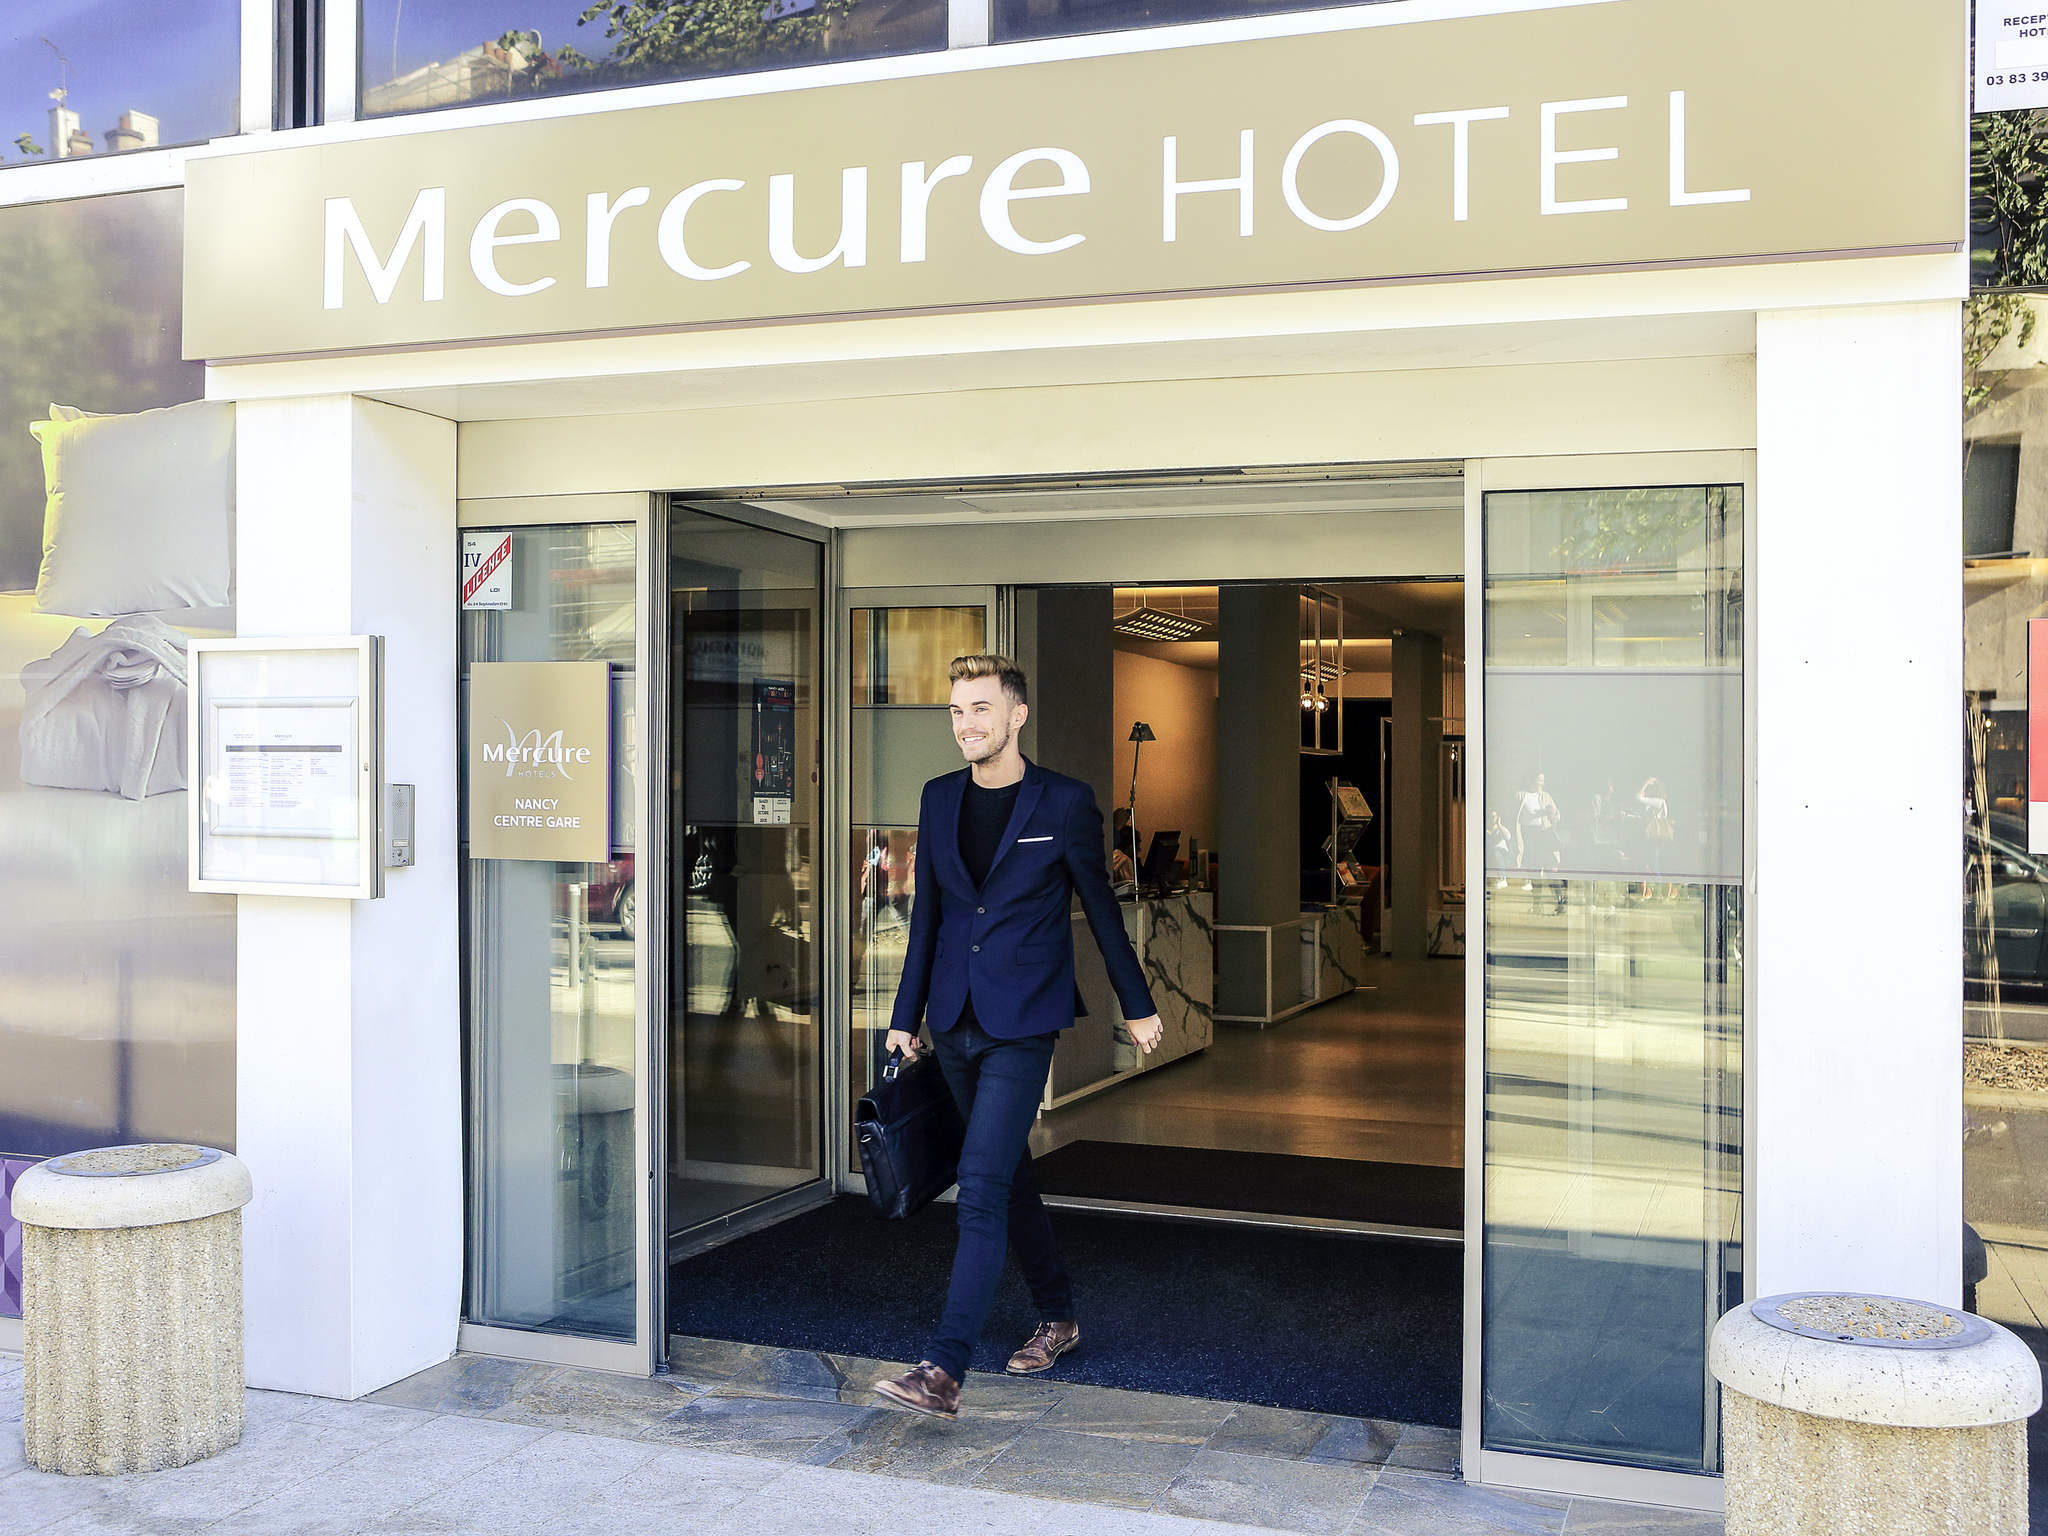 Hotel – Hôtel Mercure Nancy Centre Gare